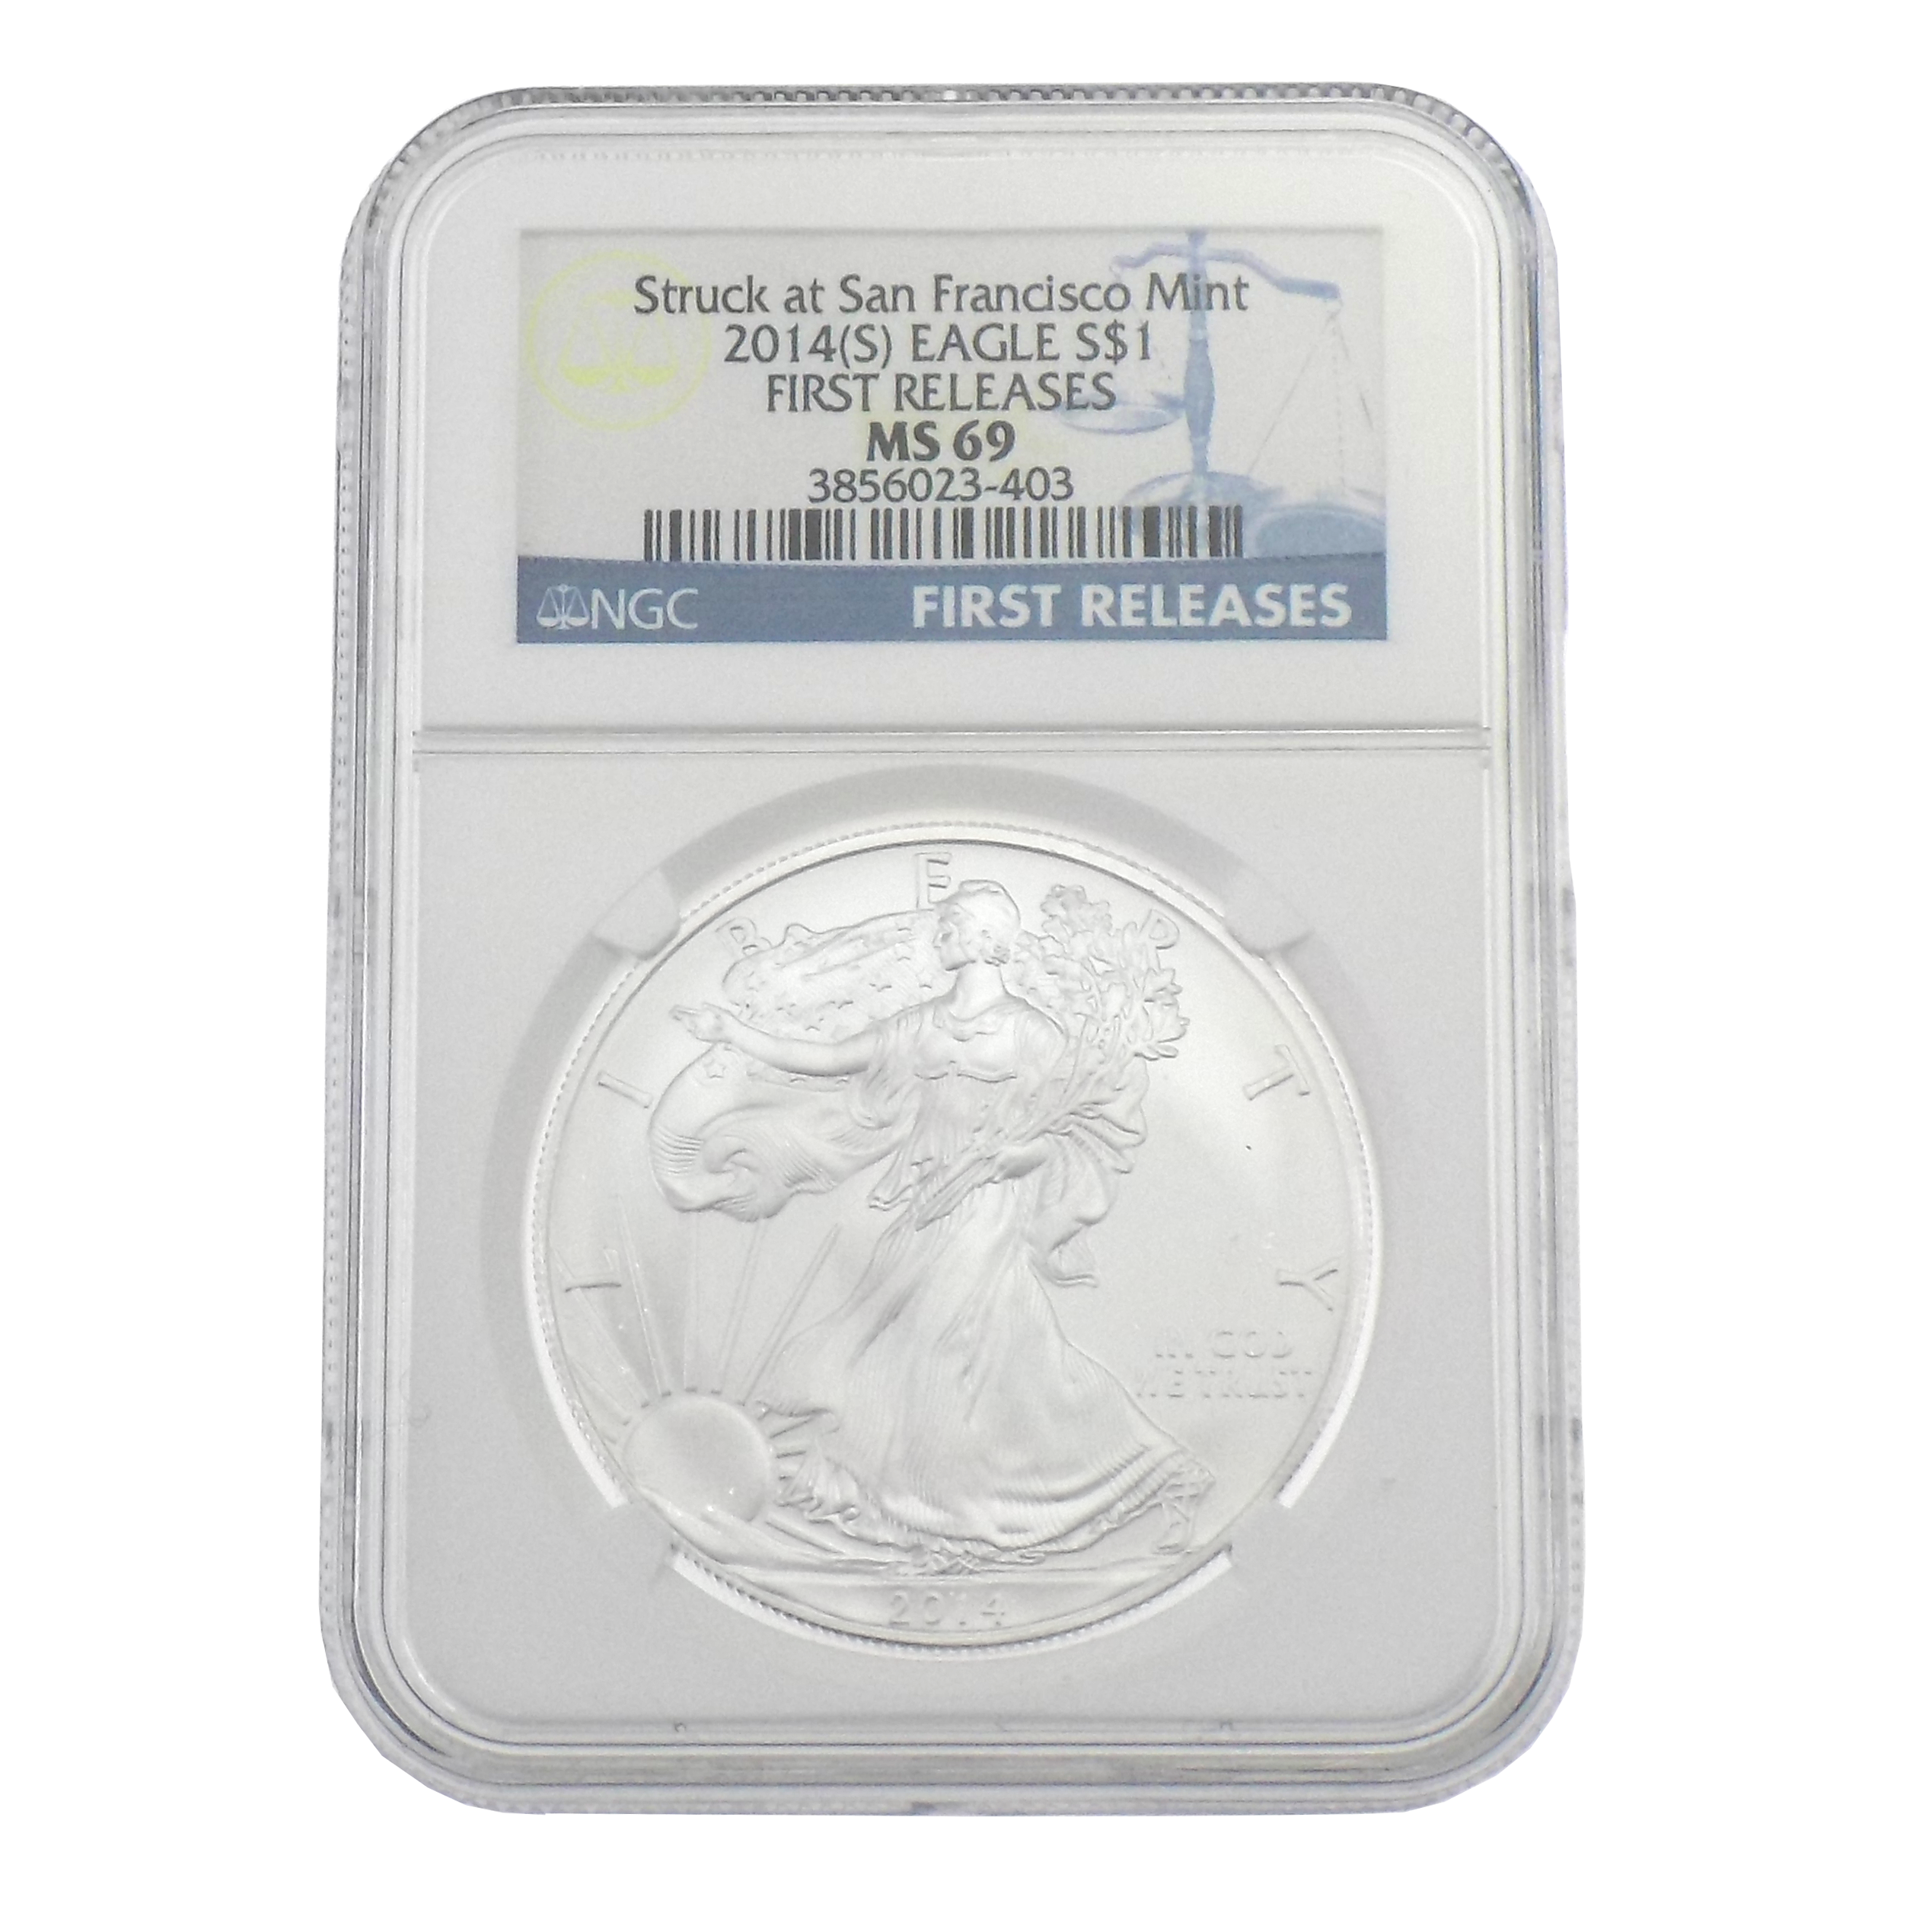 Pre-Owned 2014 USA Eagle San Francisco 1oz Silver Coin NGC Graded MS 69 - 3856023-403 - VAT Free